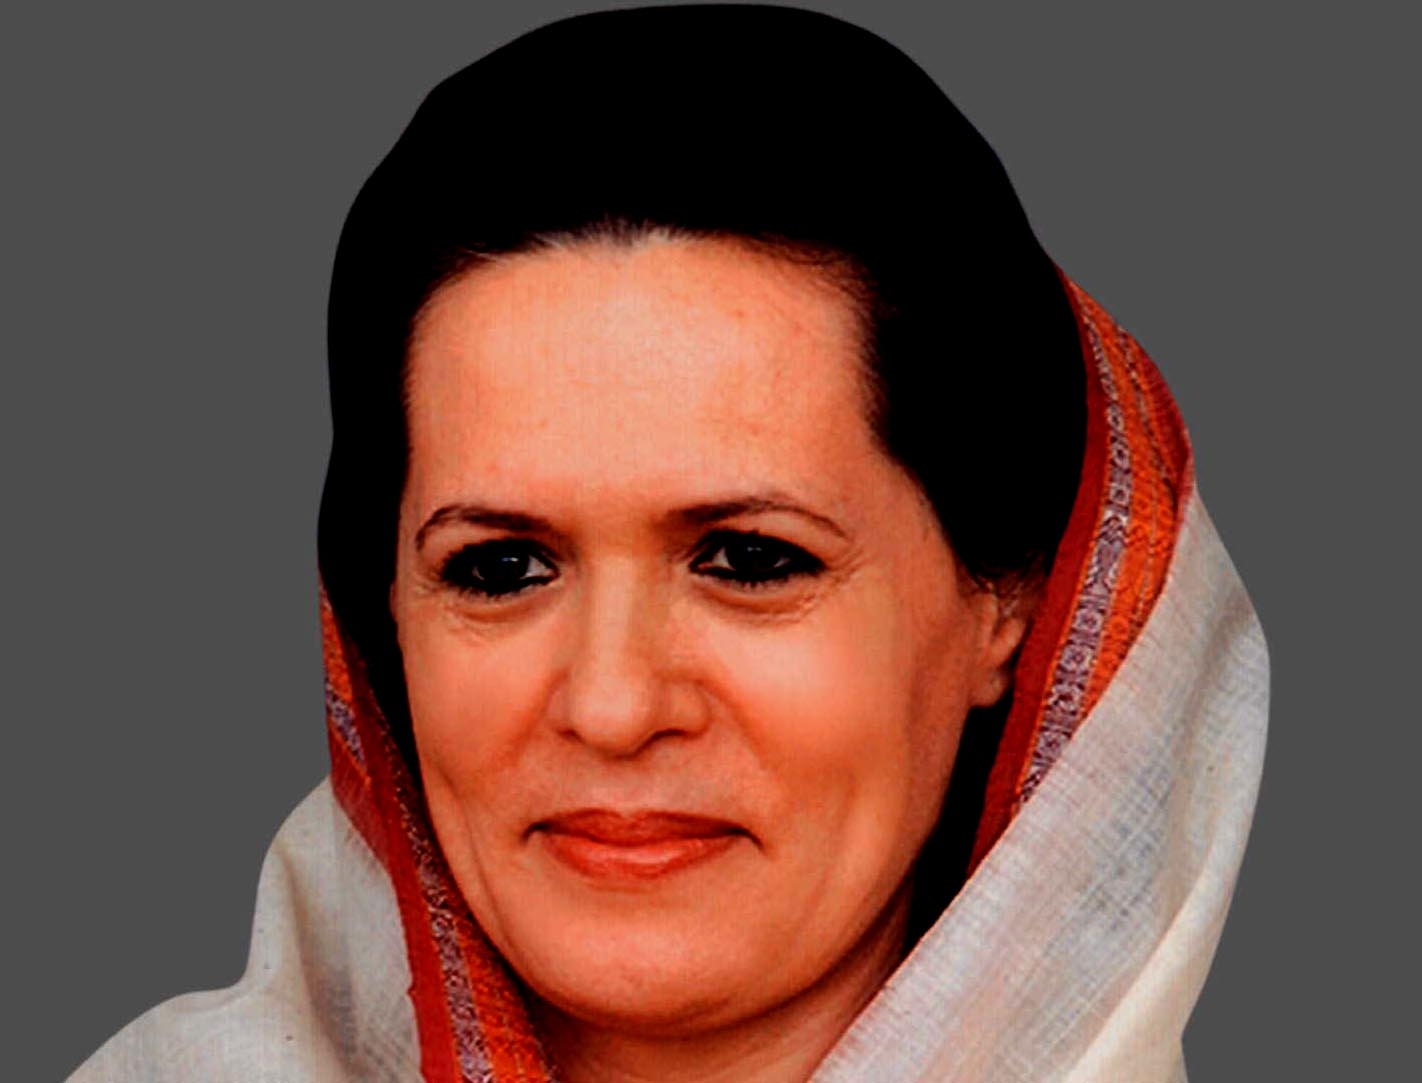 sonia gandhi leadership traits model Building new image from scratch rahul gandhi has not been able to prove his leadership qualities as the party has been sliding further as a senior congress at the national level rahul gandhi is not able to provide that leadership which is perhaps why sonia gandhi has come back to the.